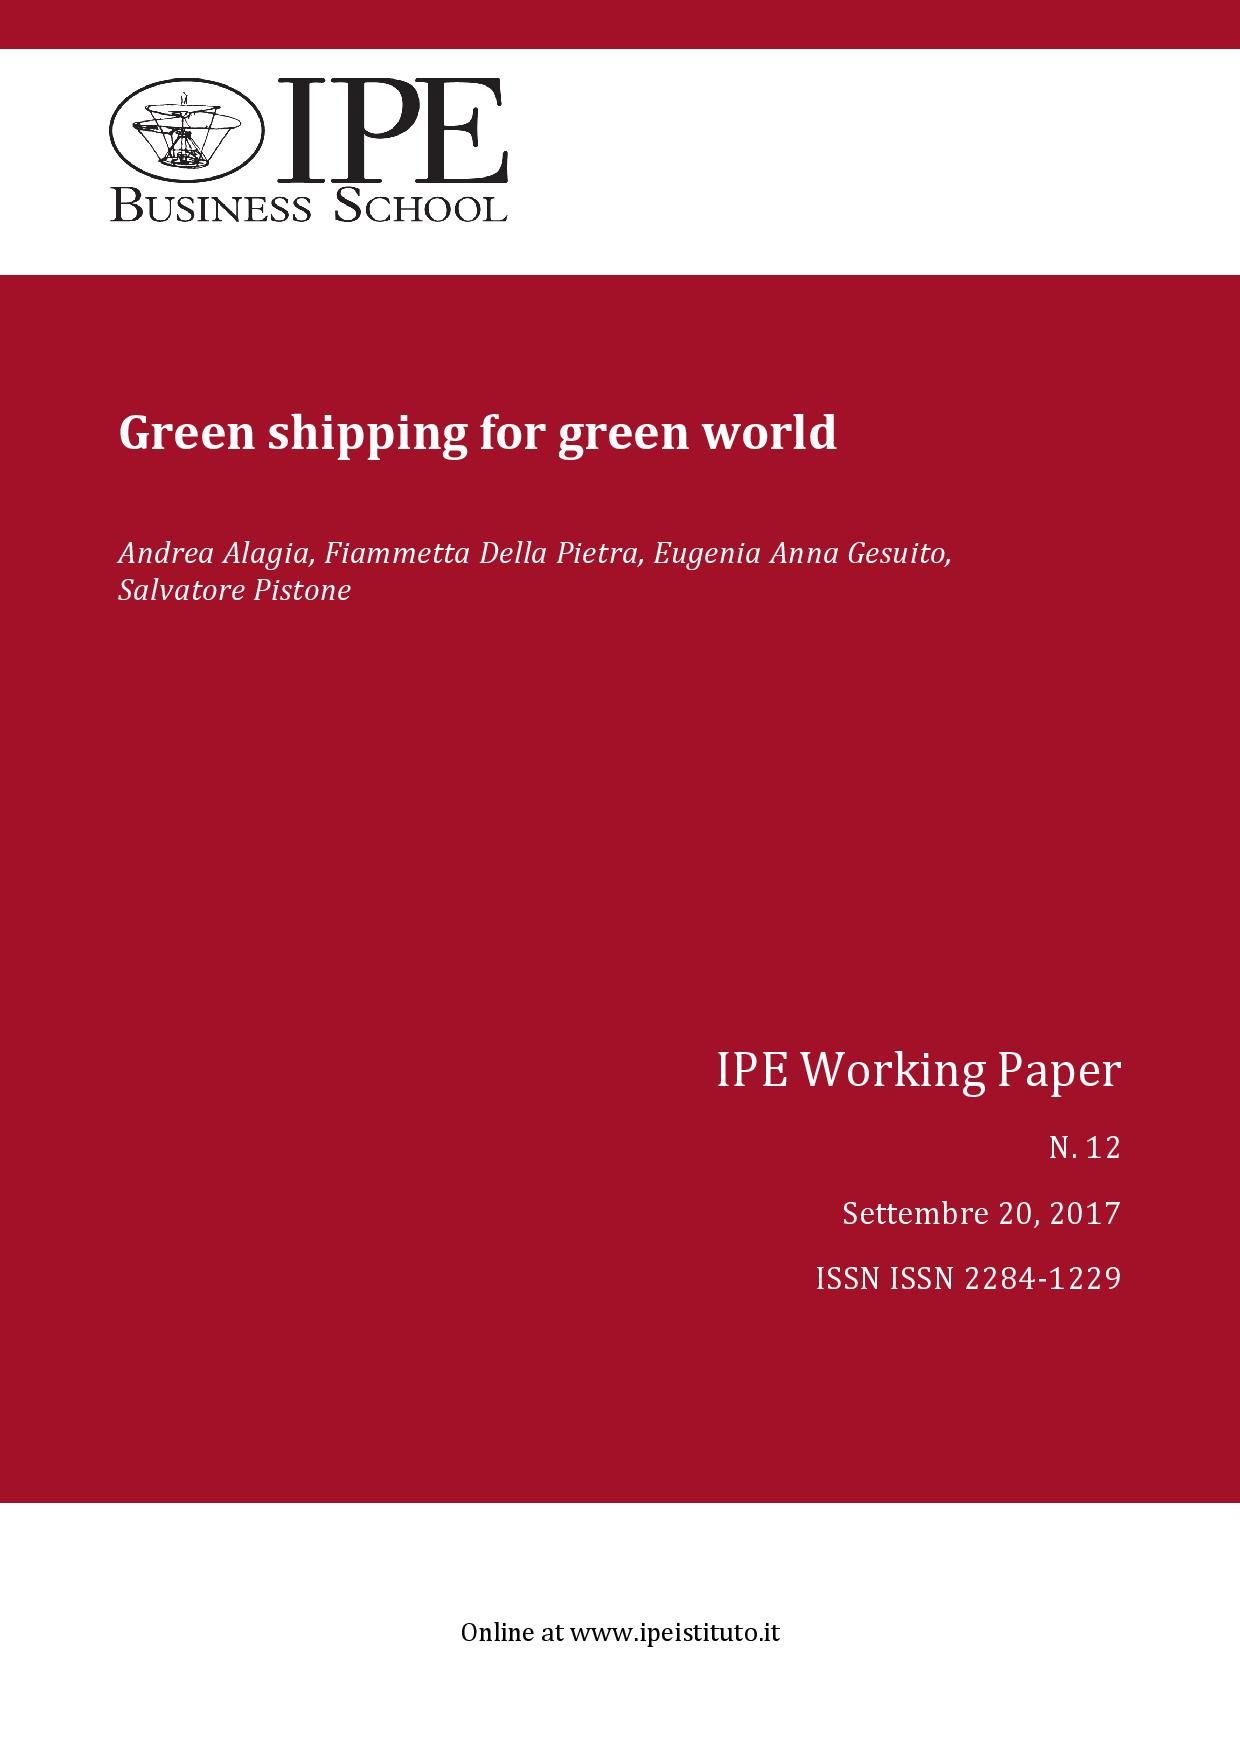 IPE Working Paper N.12/2017